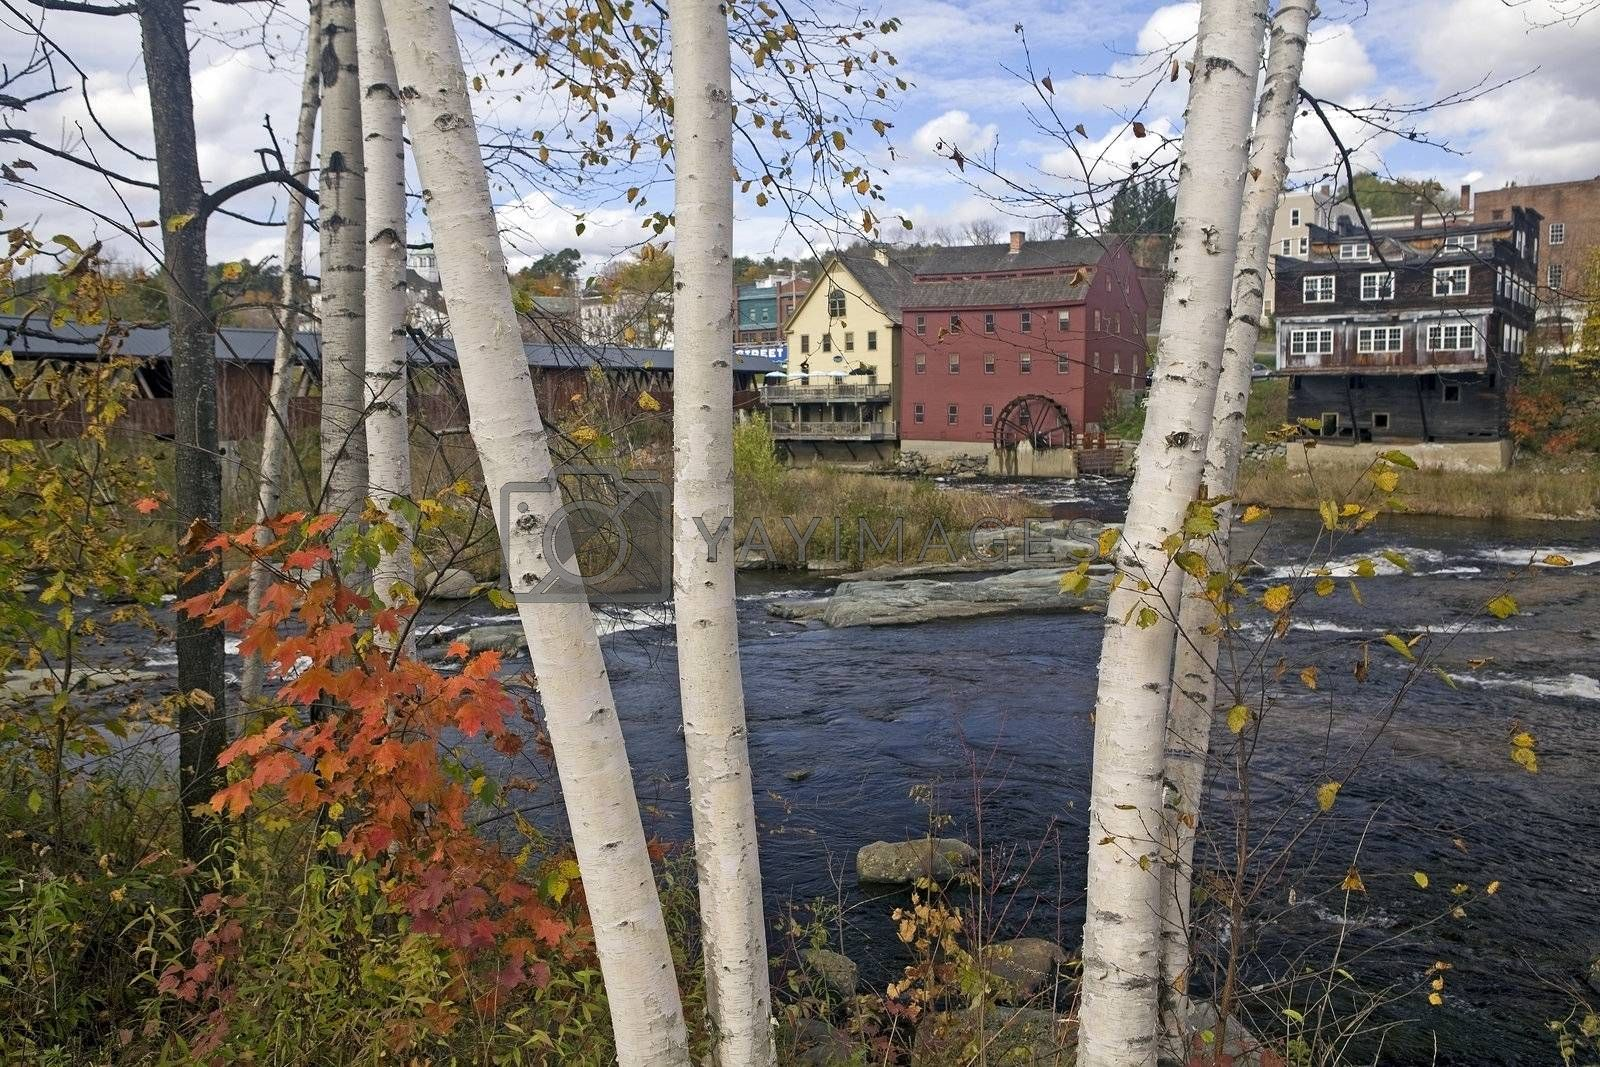 White birch trees with colorful autumn foliage growing along the Ammonoosuc River flowing through Littleton, NH. Background of blue sky, white clouds, covered bridge and old mill with water wheel.